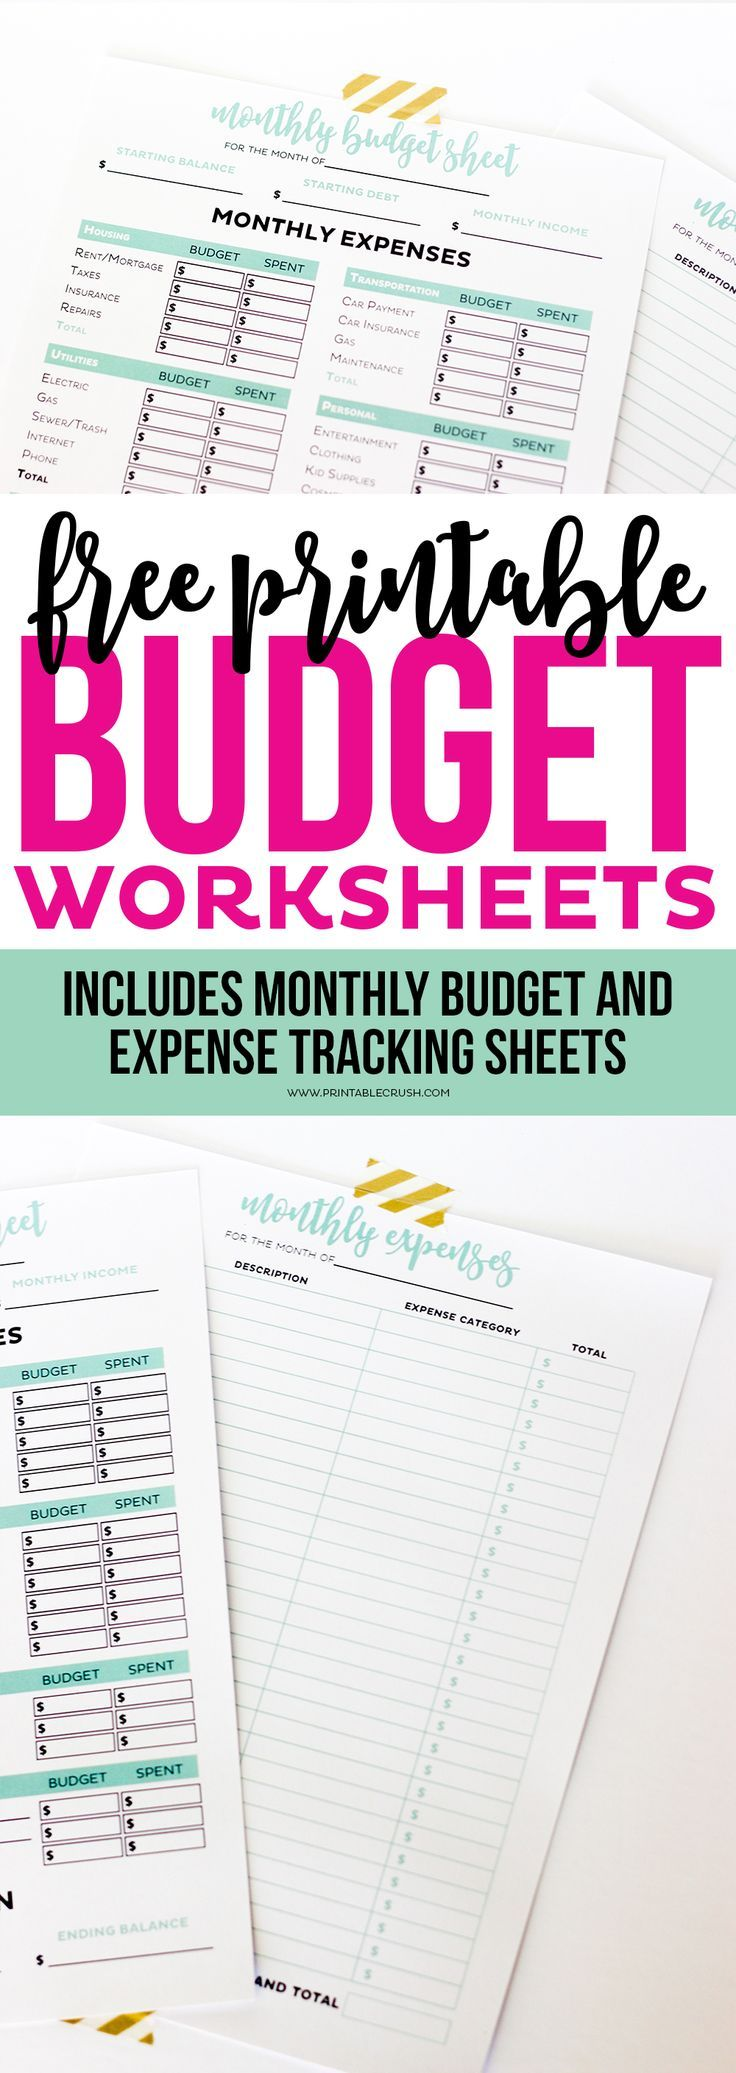 Get your finances in order with these Simple Printable Budget worksheets! Includes monthly budget and expense sheets so you can easily keep track of your money!